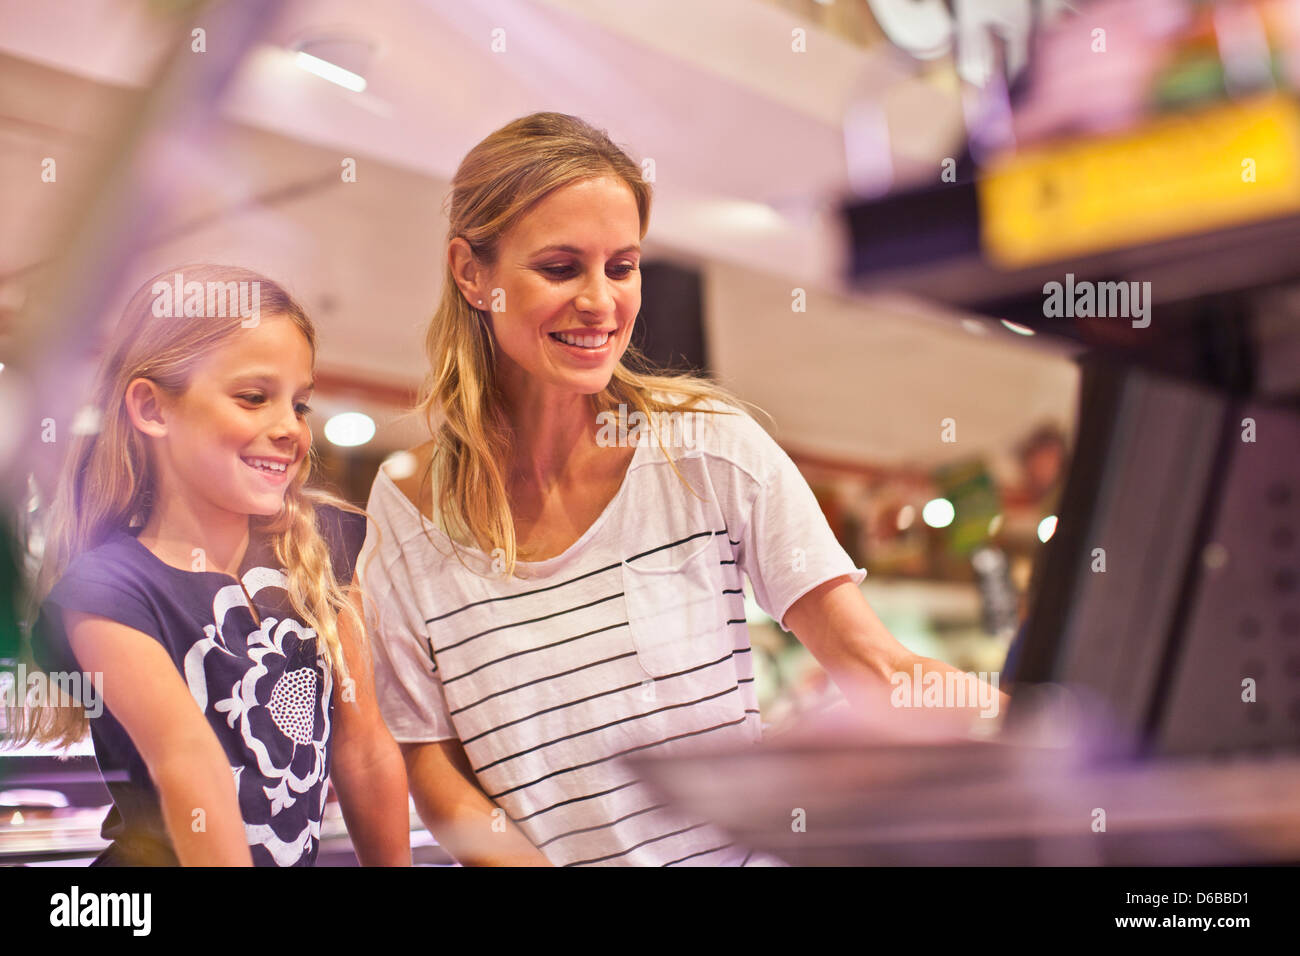 Mother and daughter in grocery store - Stock Image